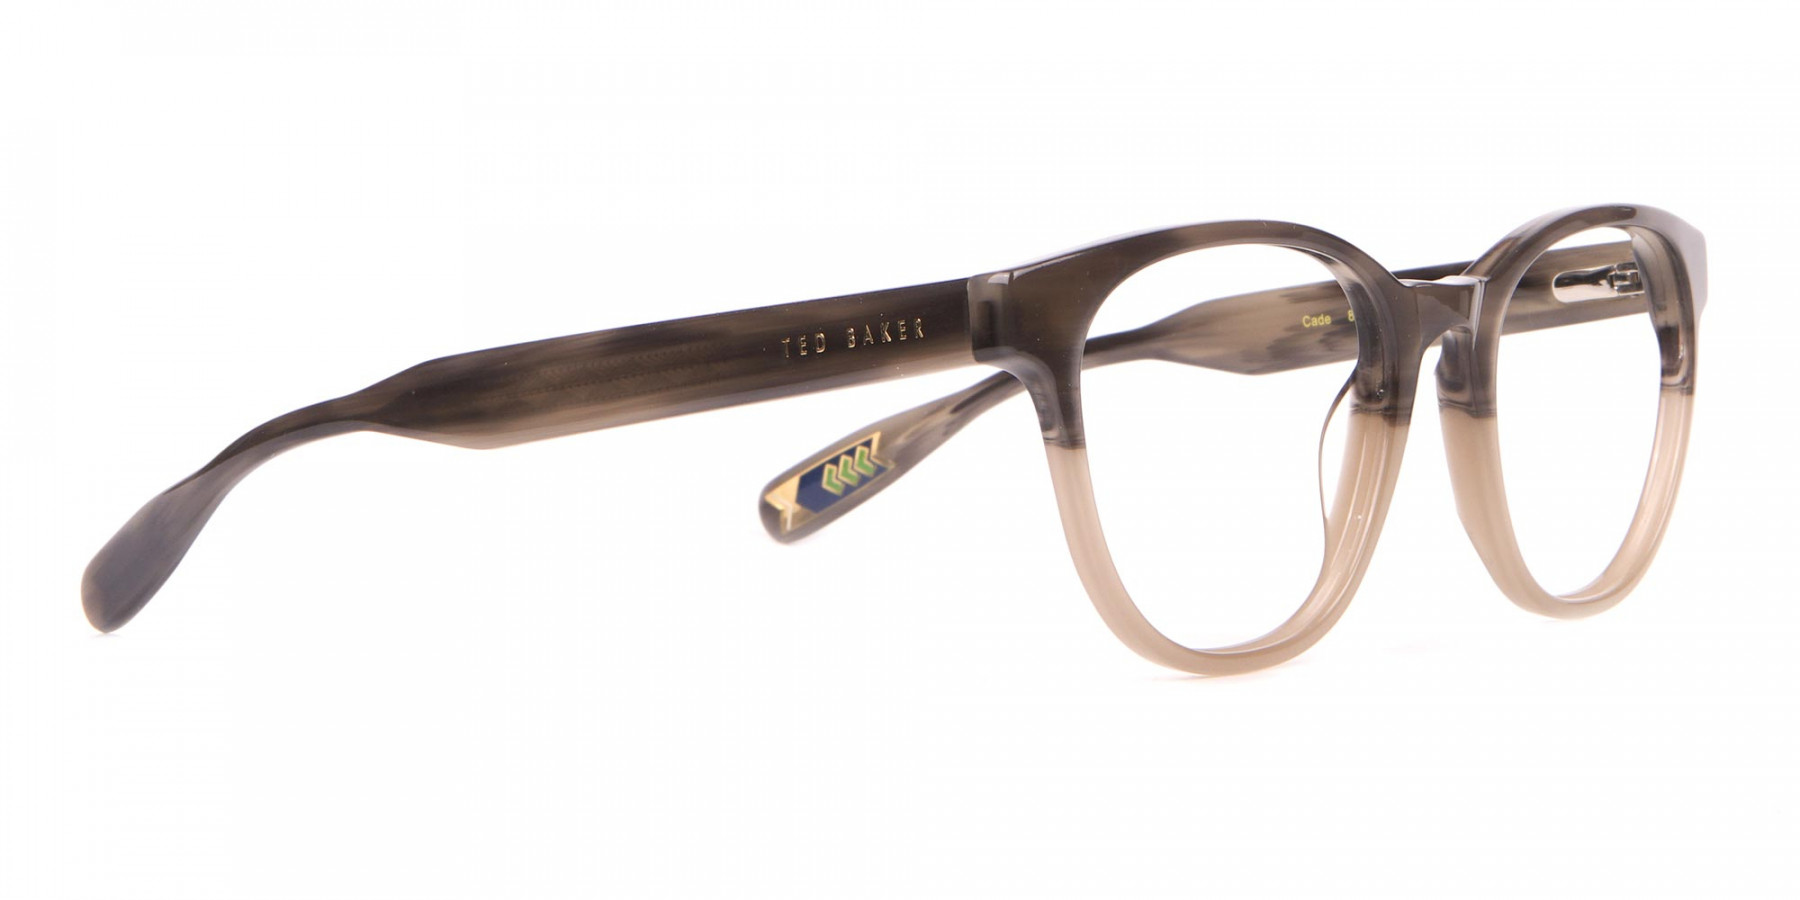 TED BAKER TB8197 Cade Glasses Classic Round in Grey Horn-1